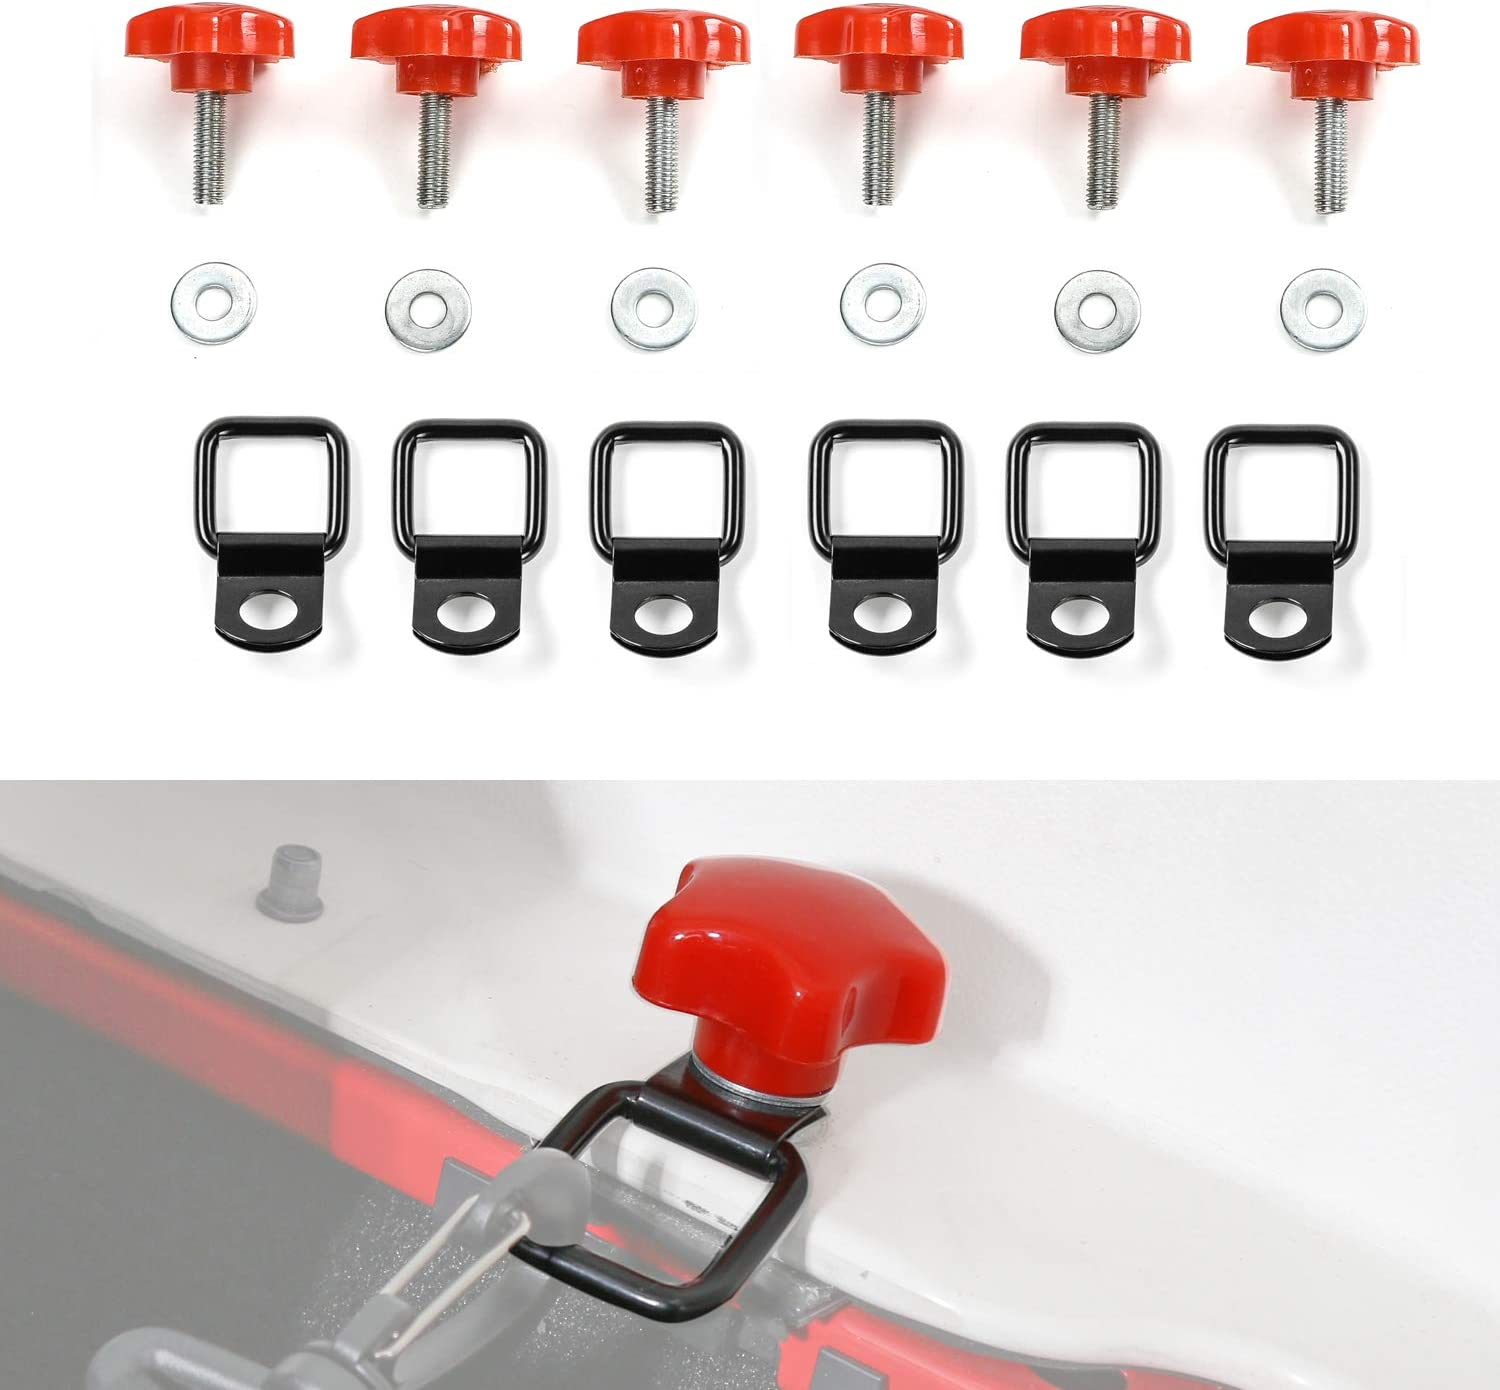 6Pcs Hardtop Raleigh Mall Quick 70% OFF Outlet Removal Bolts Screws Tie D Ring Thumb